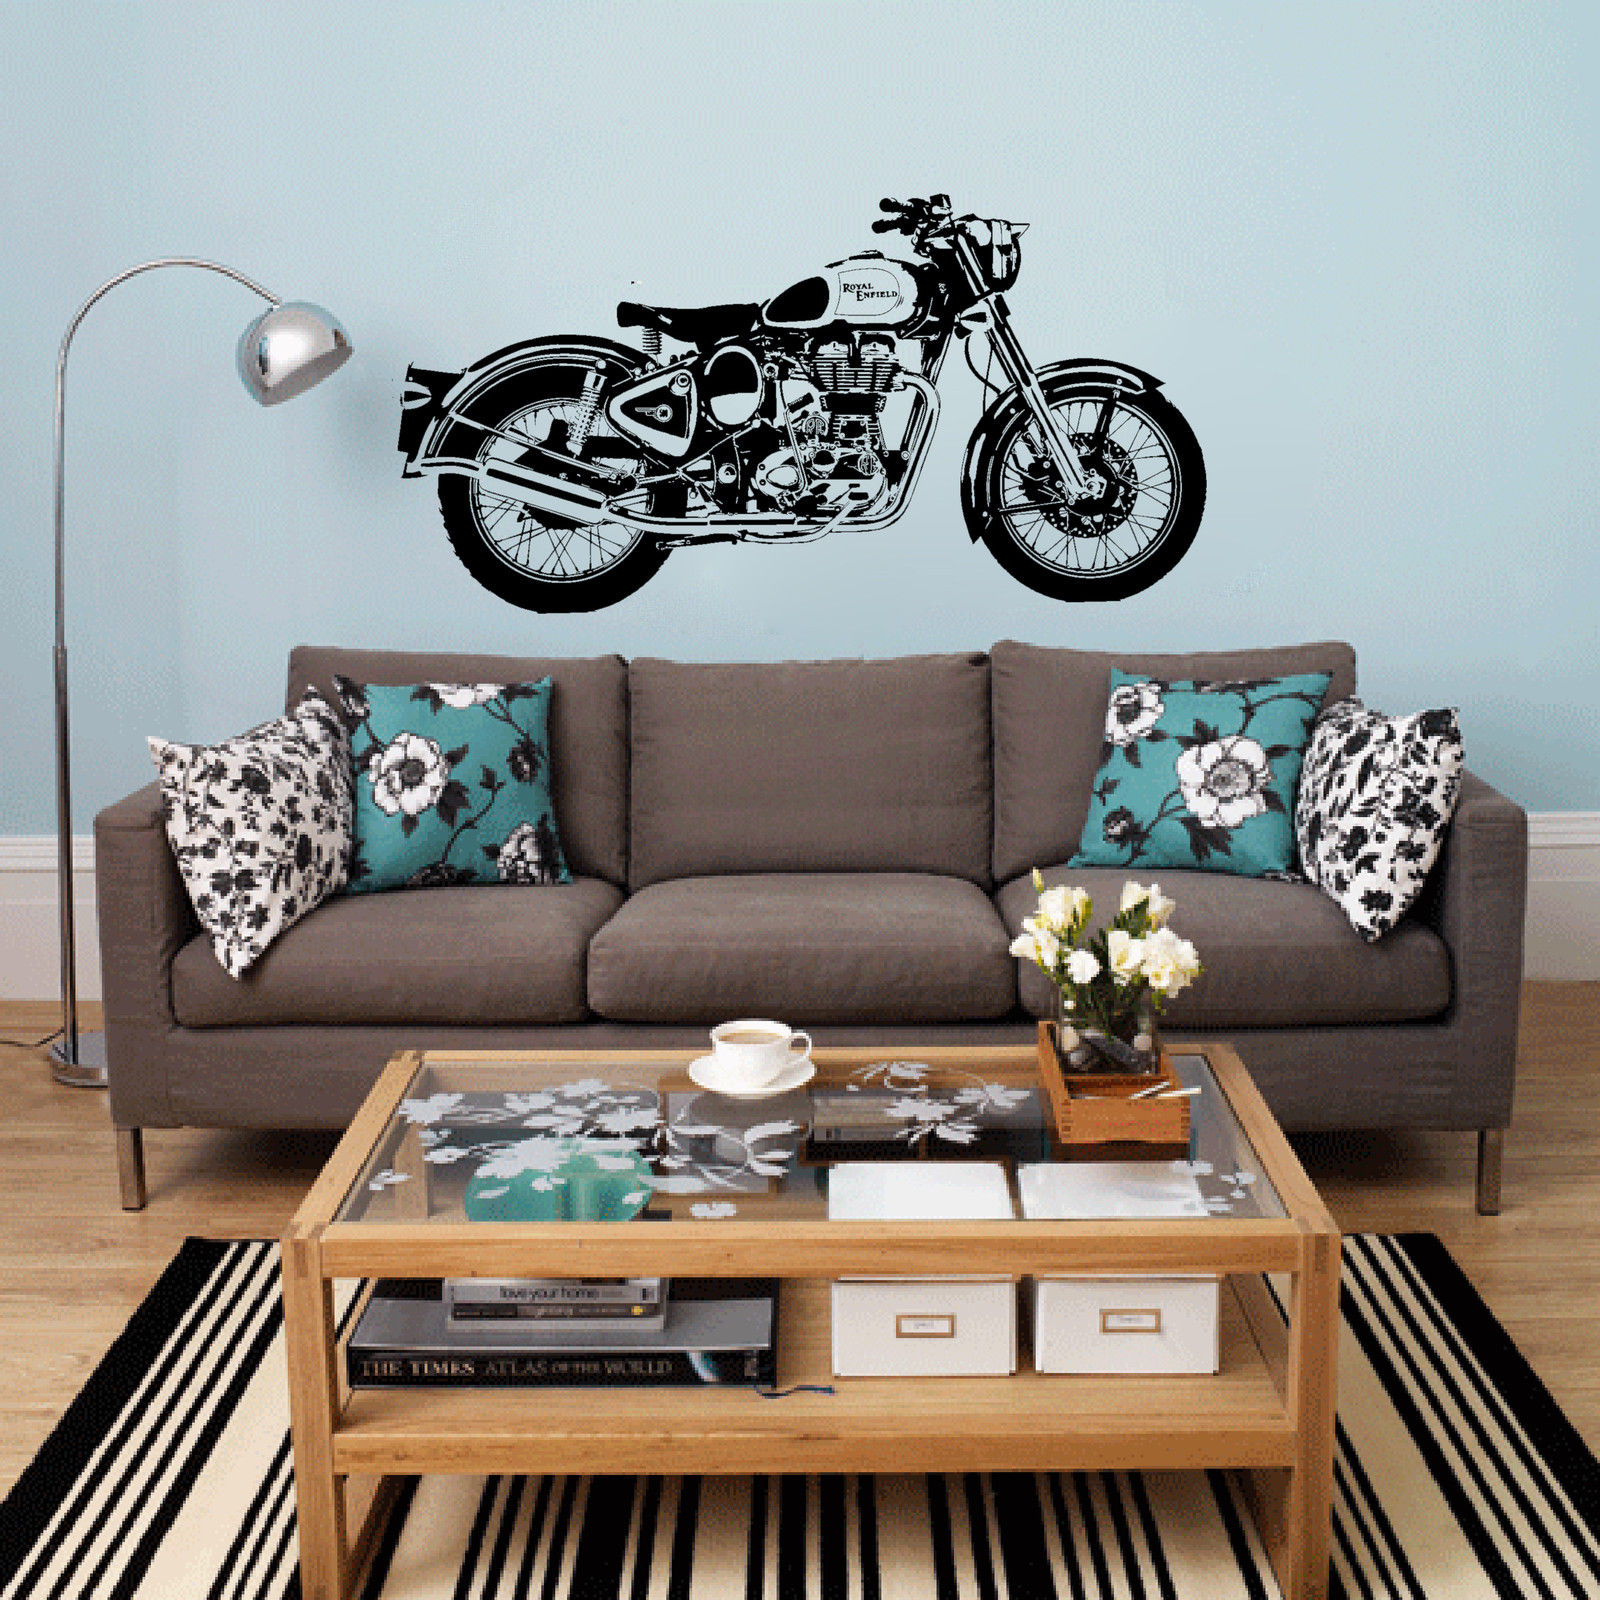 Buy d3681 motorbike wall art sticker for Car wallpaper mural